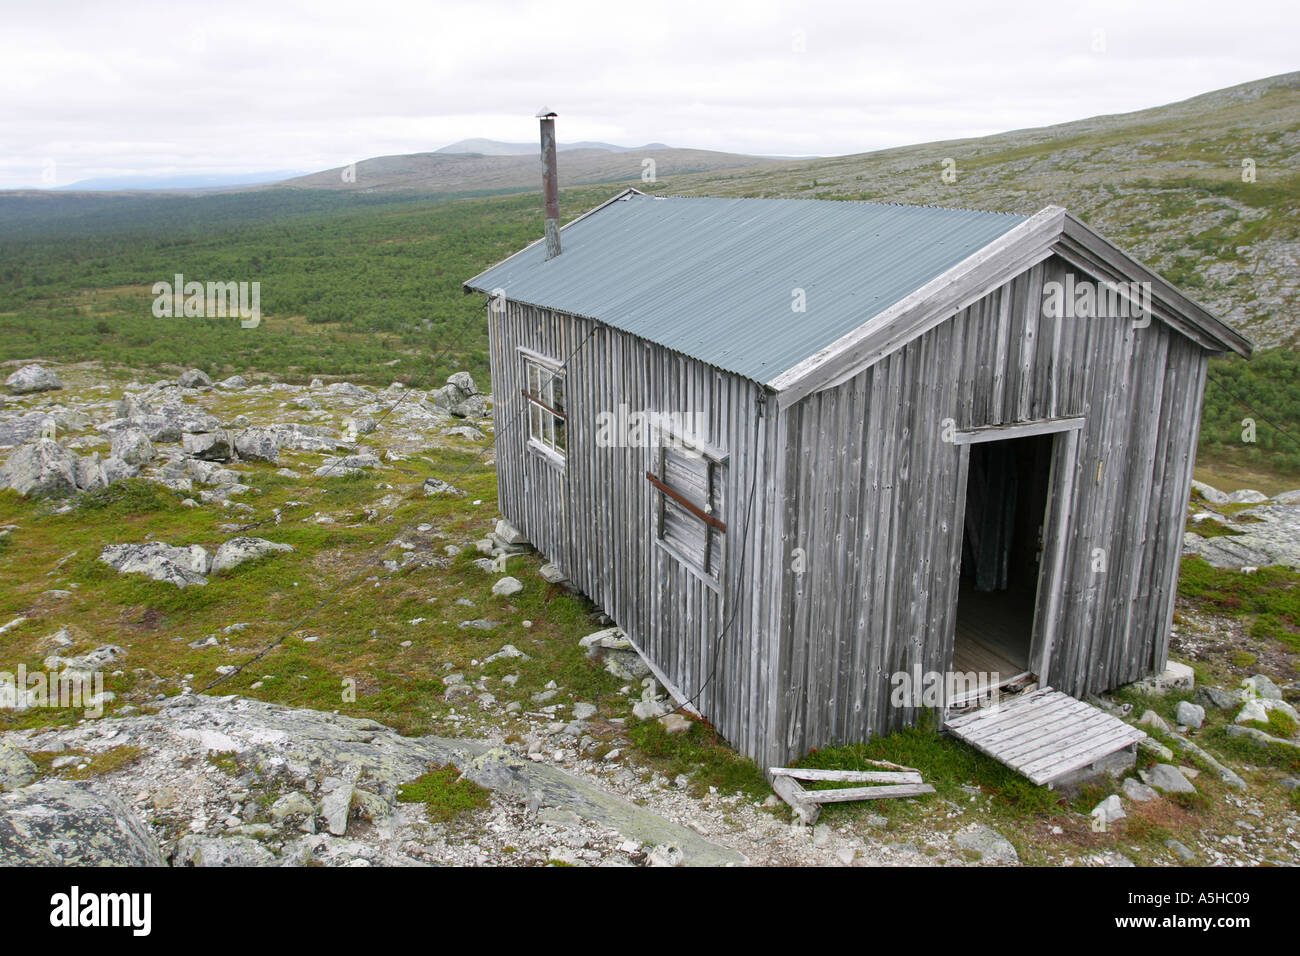 Shelter om the top of a Norwegian mountain - Stock Image